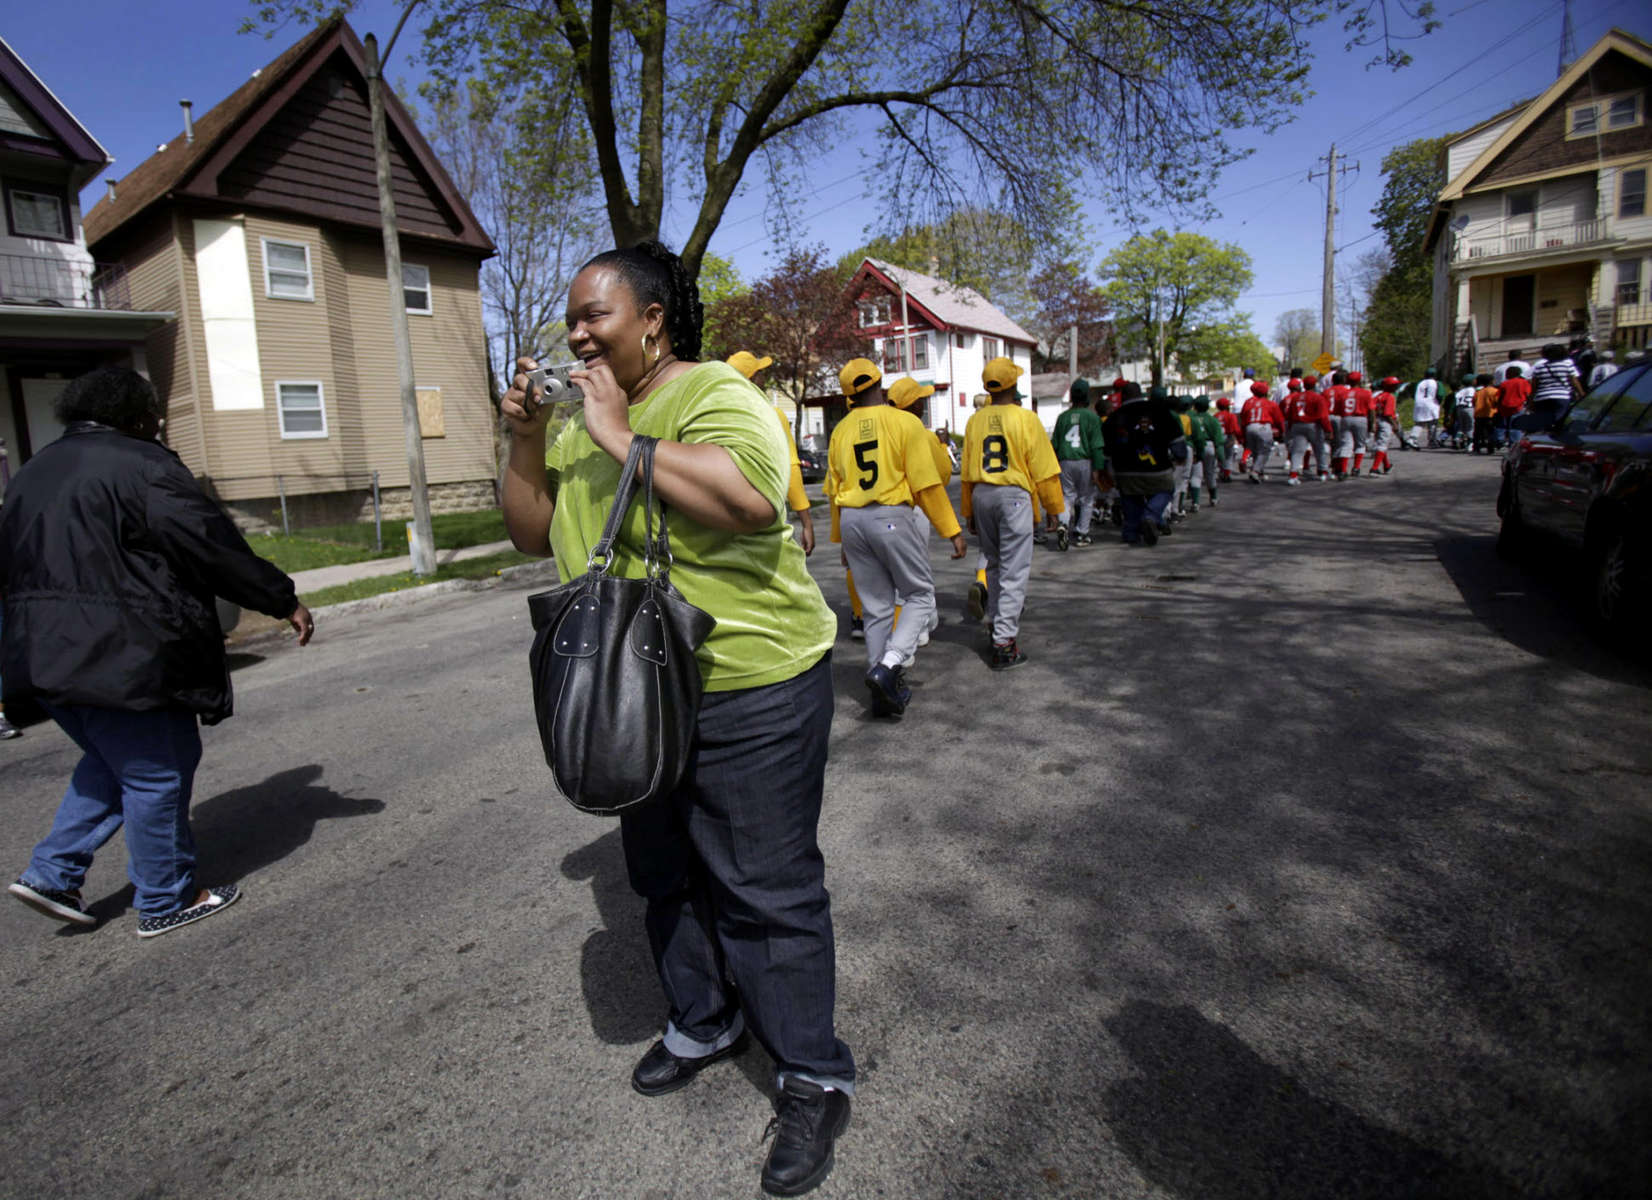 To help the boys meet other children from their neighborhood, Brandy has signed them up for local Little League. On opening day she searches the crowd for her two sons, proudly snapping photos of them as they march by with their Little League team during a parade.